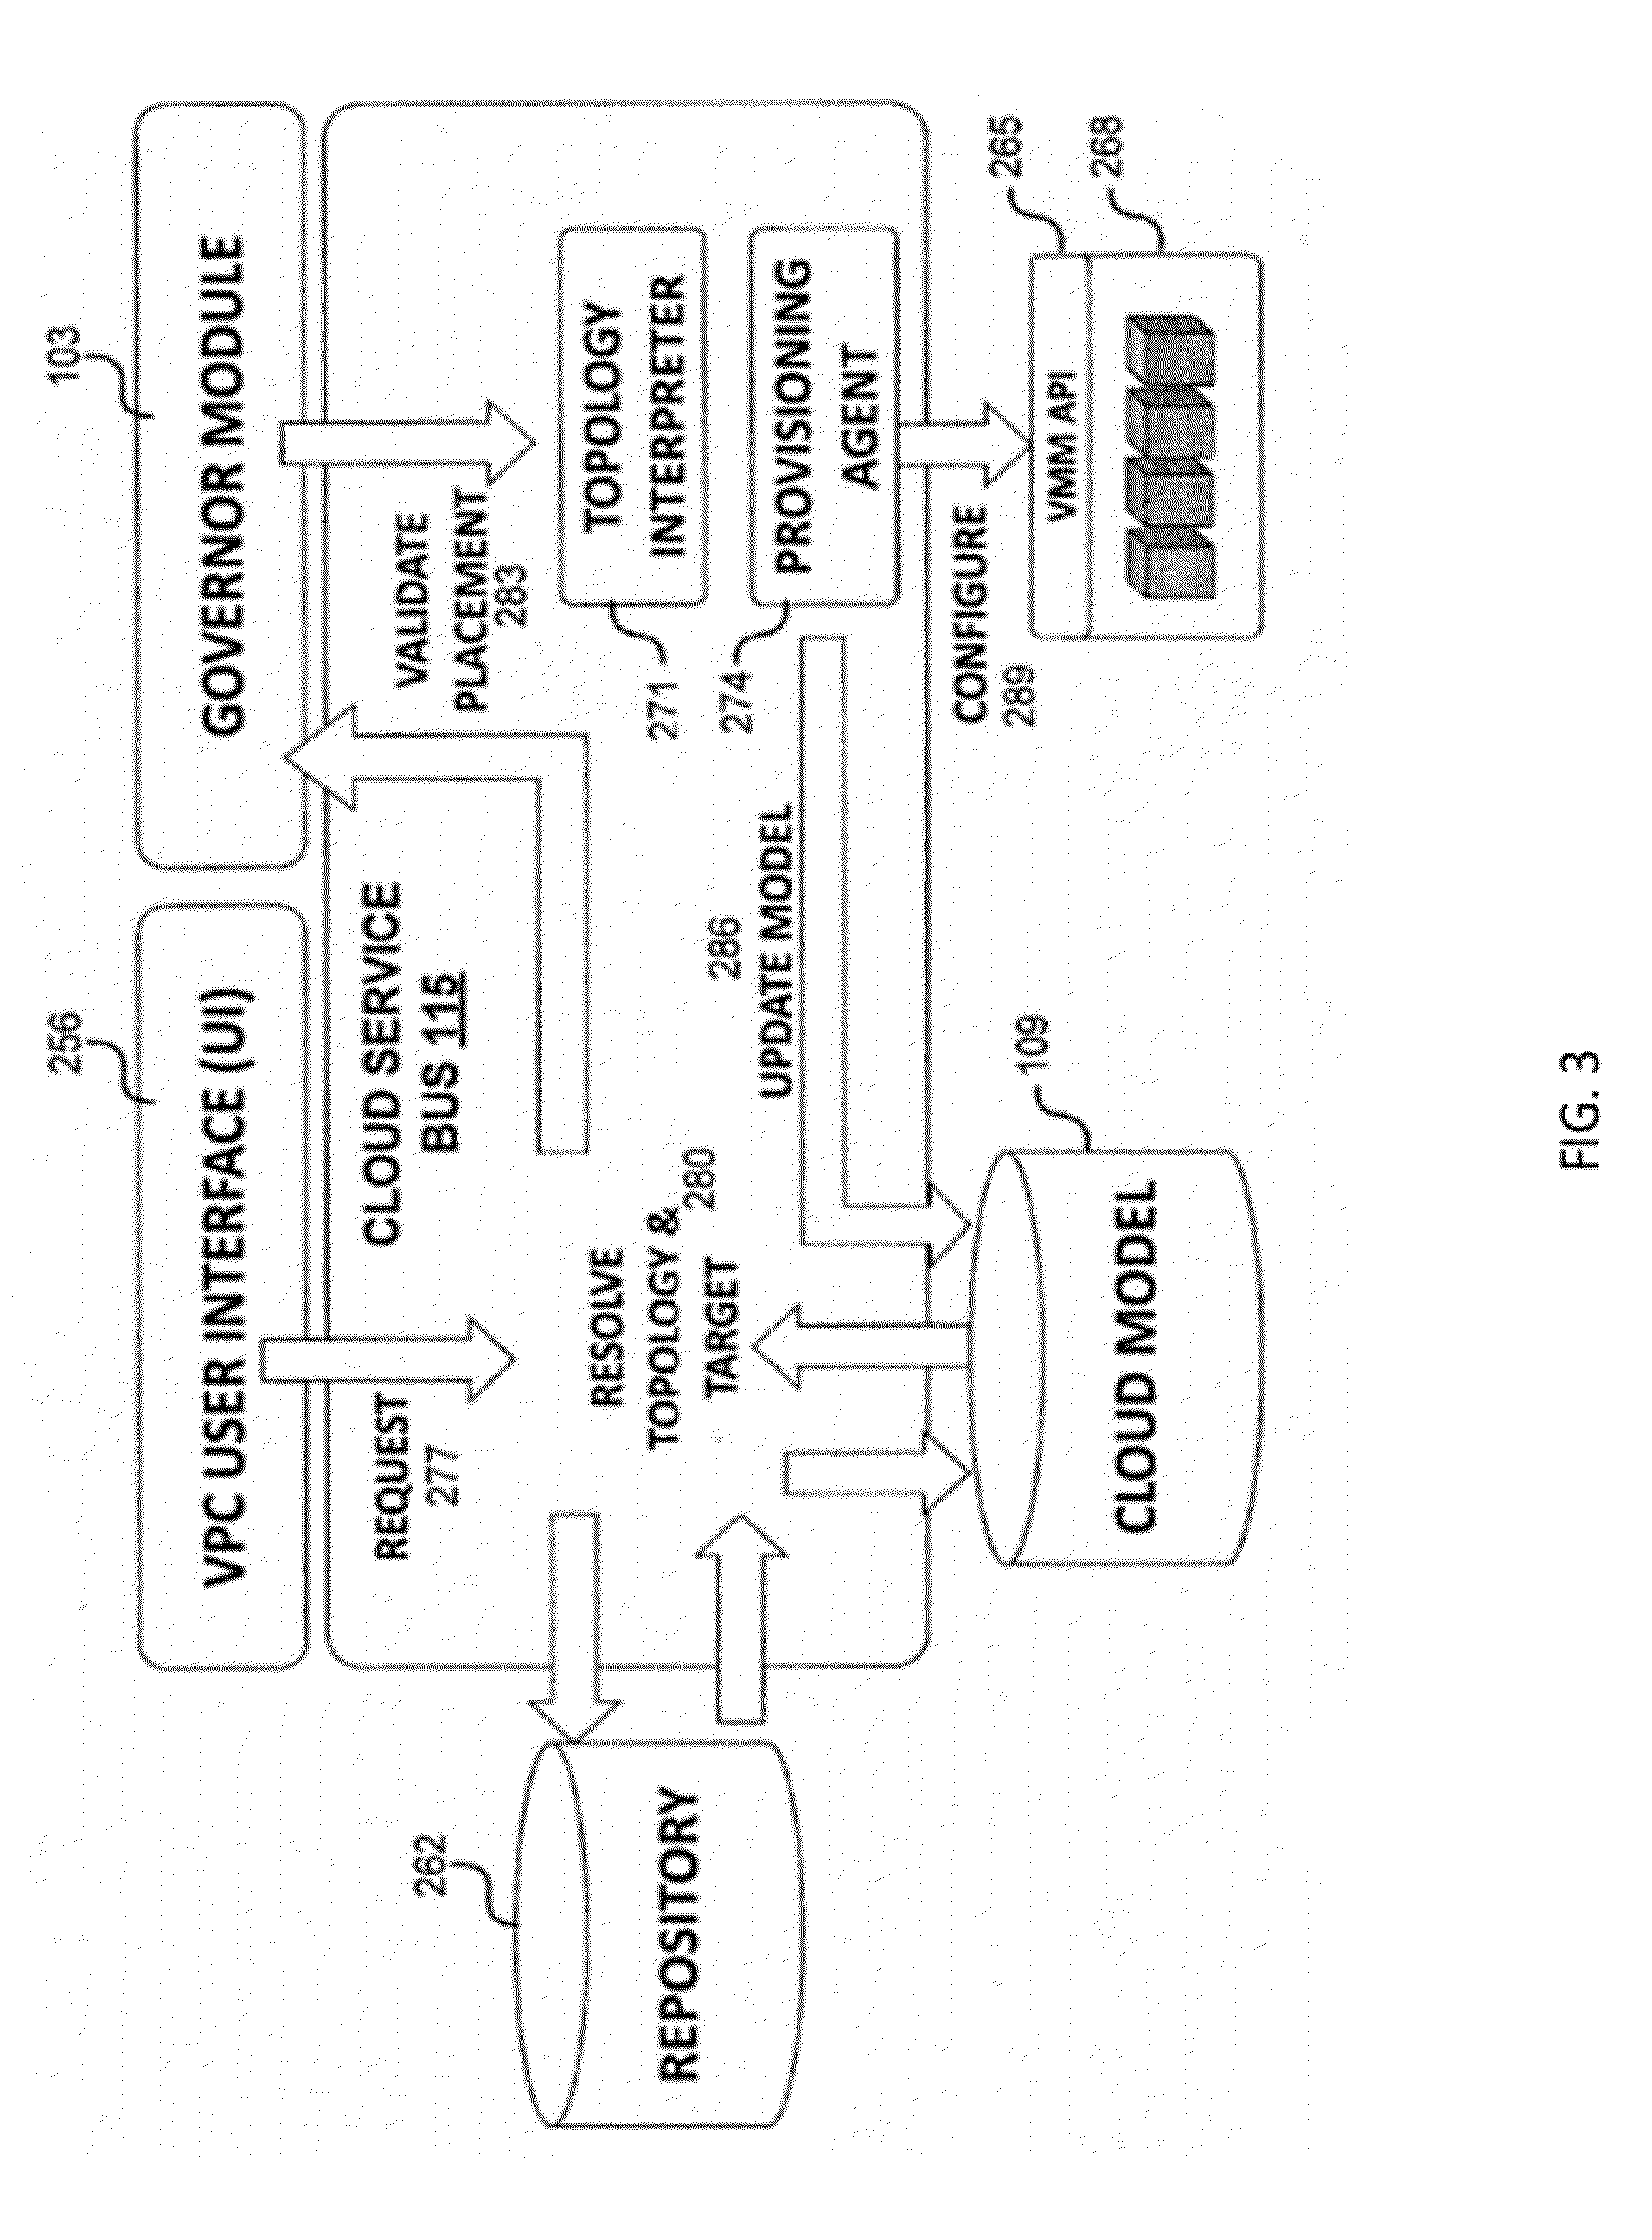 patent us20120185913 system and method for a cloud computing patent drawing